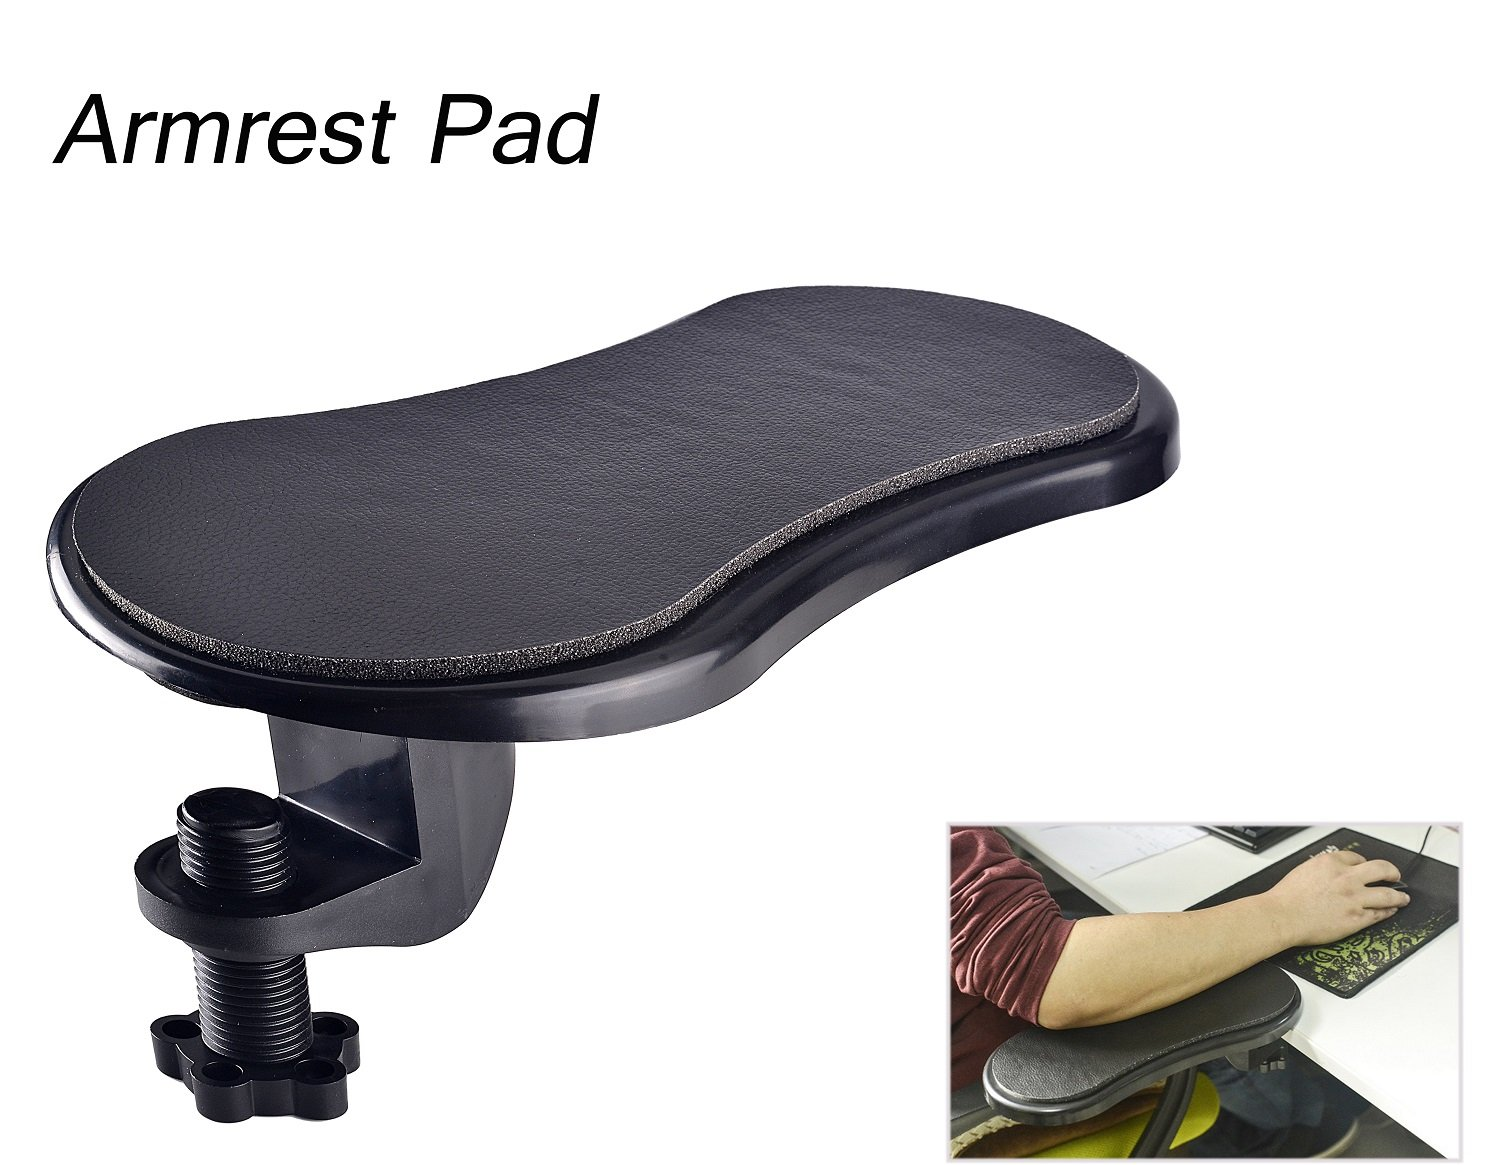 Rotating Computer Arm Rest Pad, Ergonomic Adjustable PC Wrist Rest Extender, Desk Attachable Home Office Mouse Pad Health Care Arm Support